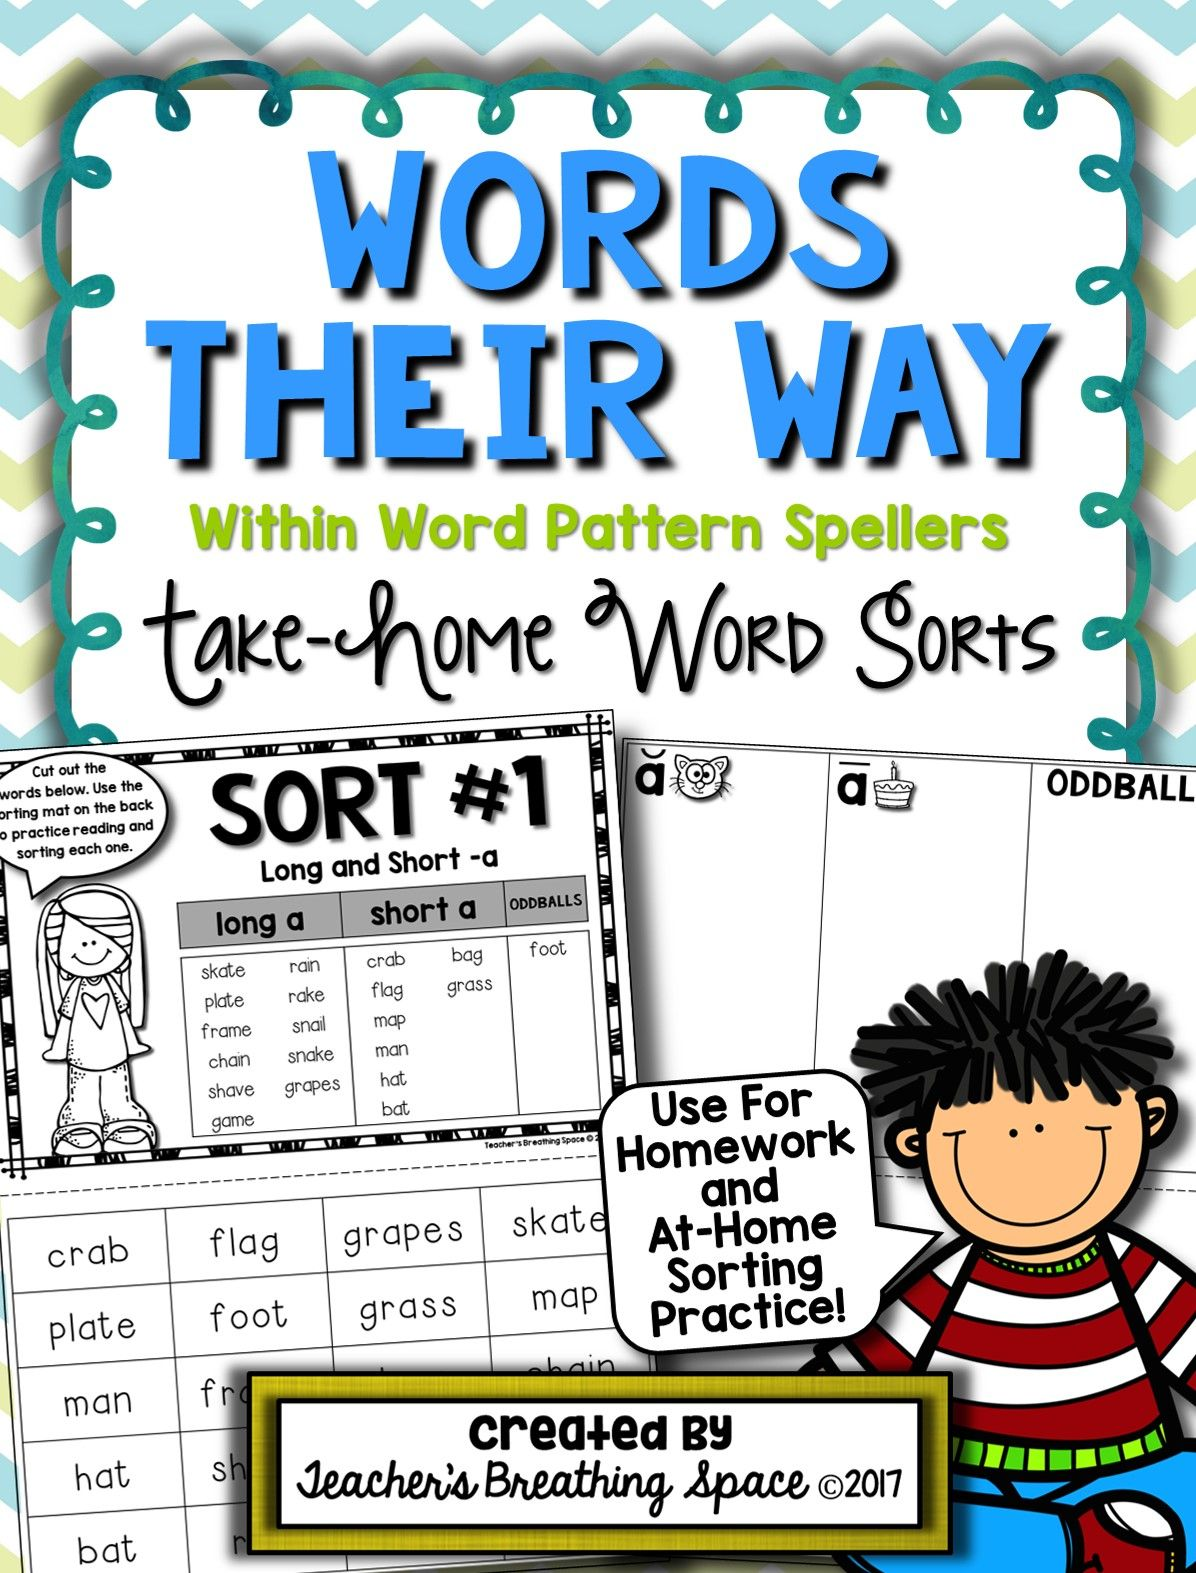 worksheet Words Their Way Worksheets words their way within word pattern take home lists and sorts